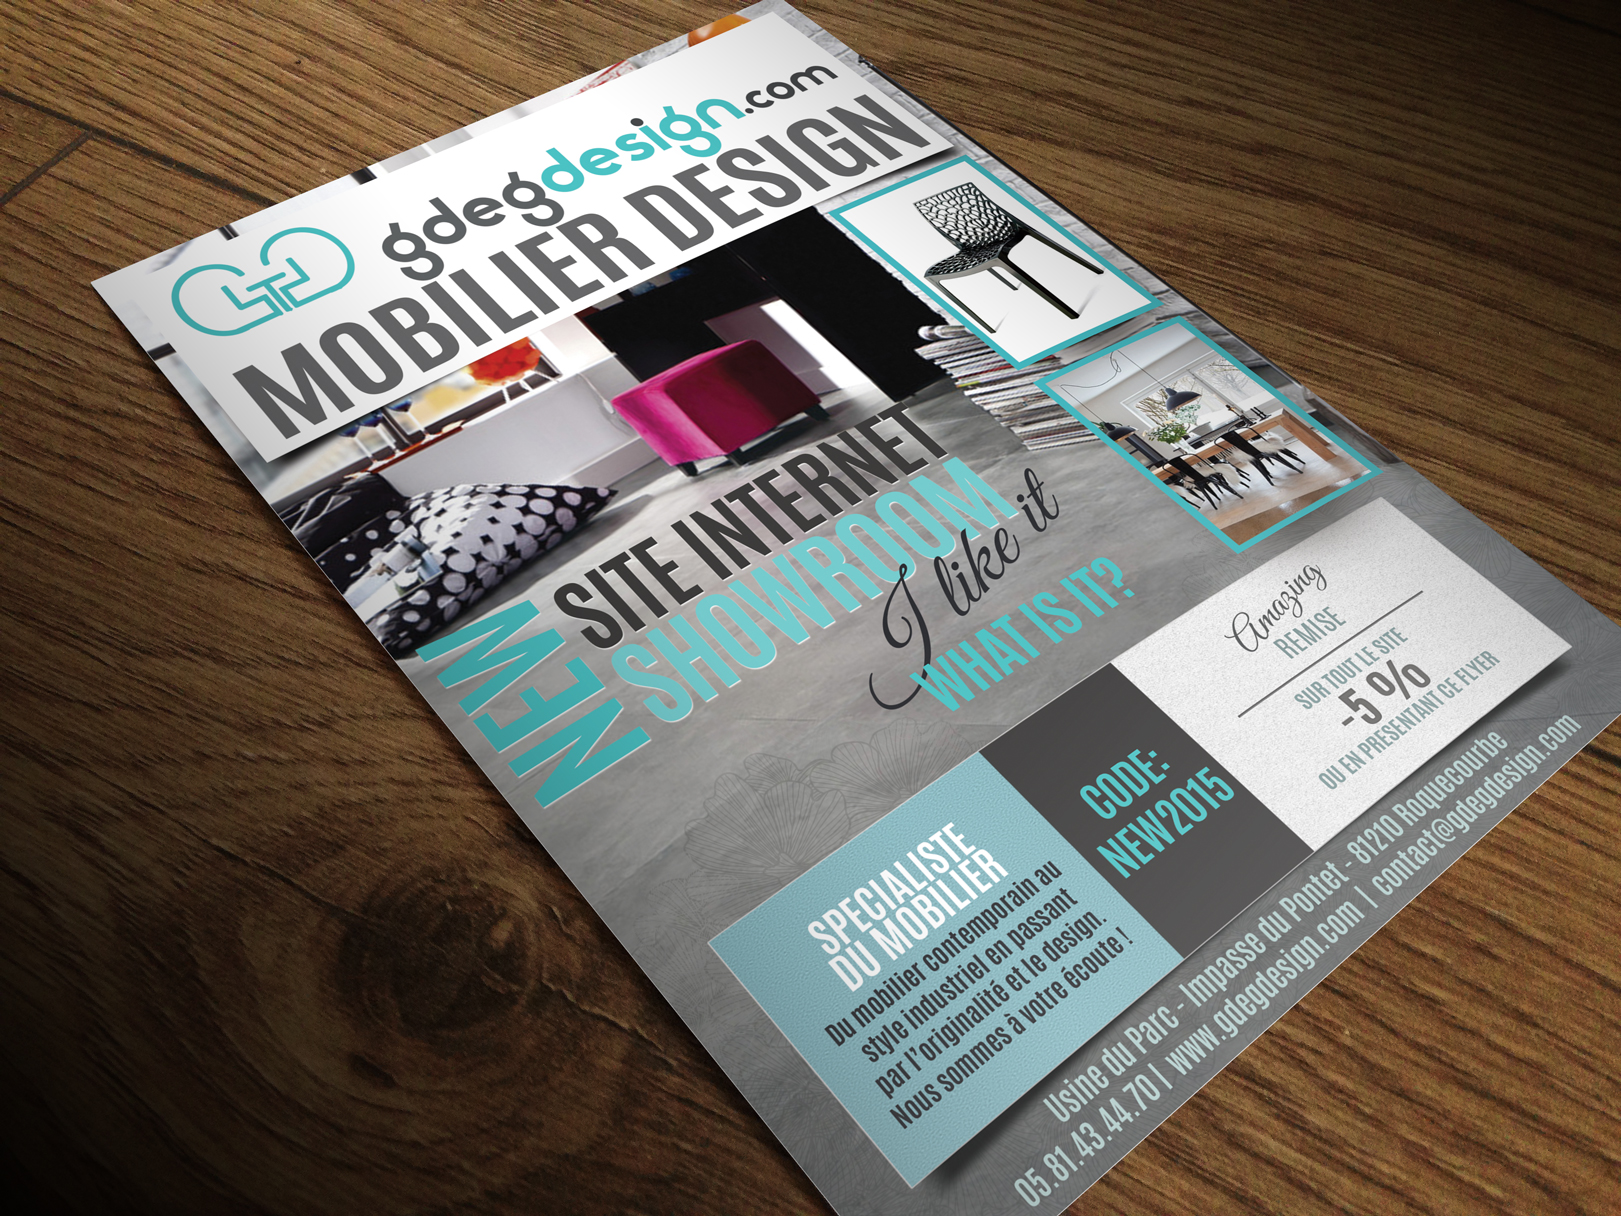 flyer-gdegdesign2015